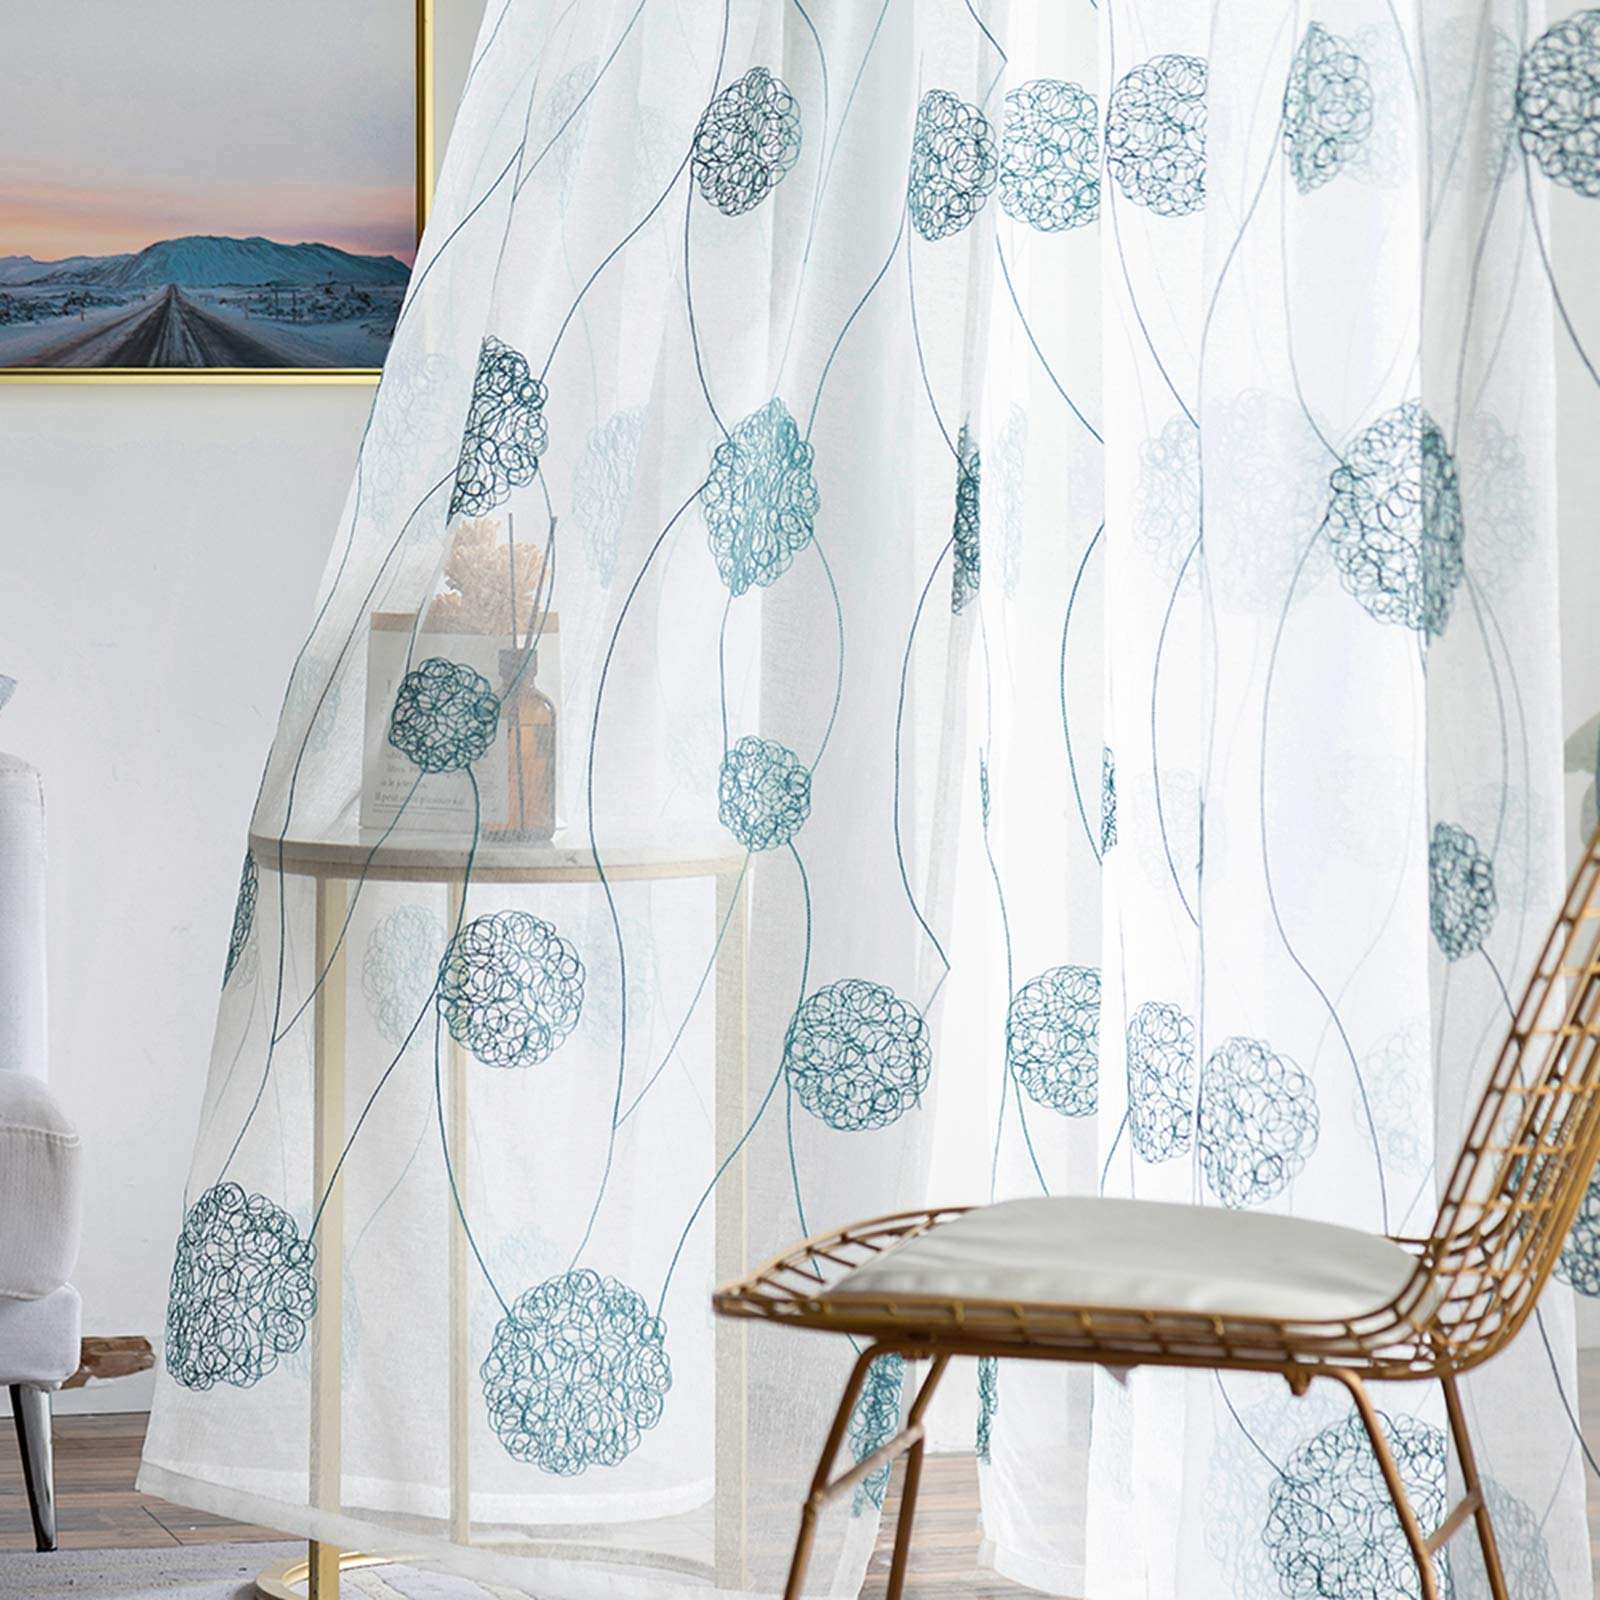 Amazon Com Mrtrees Floral Embroidered Sheer Curtains 63 Inch Length Bedroom Flower Embroidery Semi Curtain Sheers Bedroom Rod Pocket Window Treatment Set Voile Curtain Panels Aqua Blue On White 2 Panels Kitchen